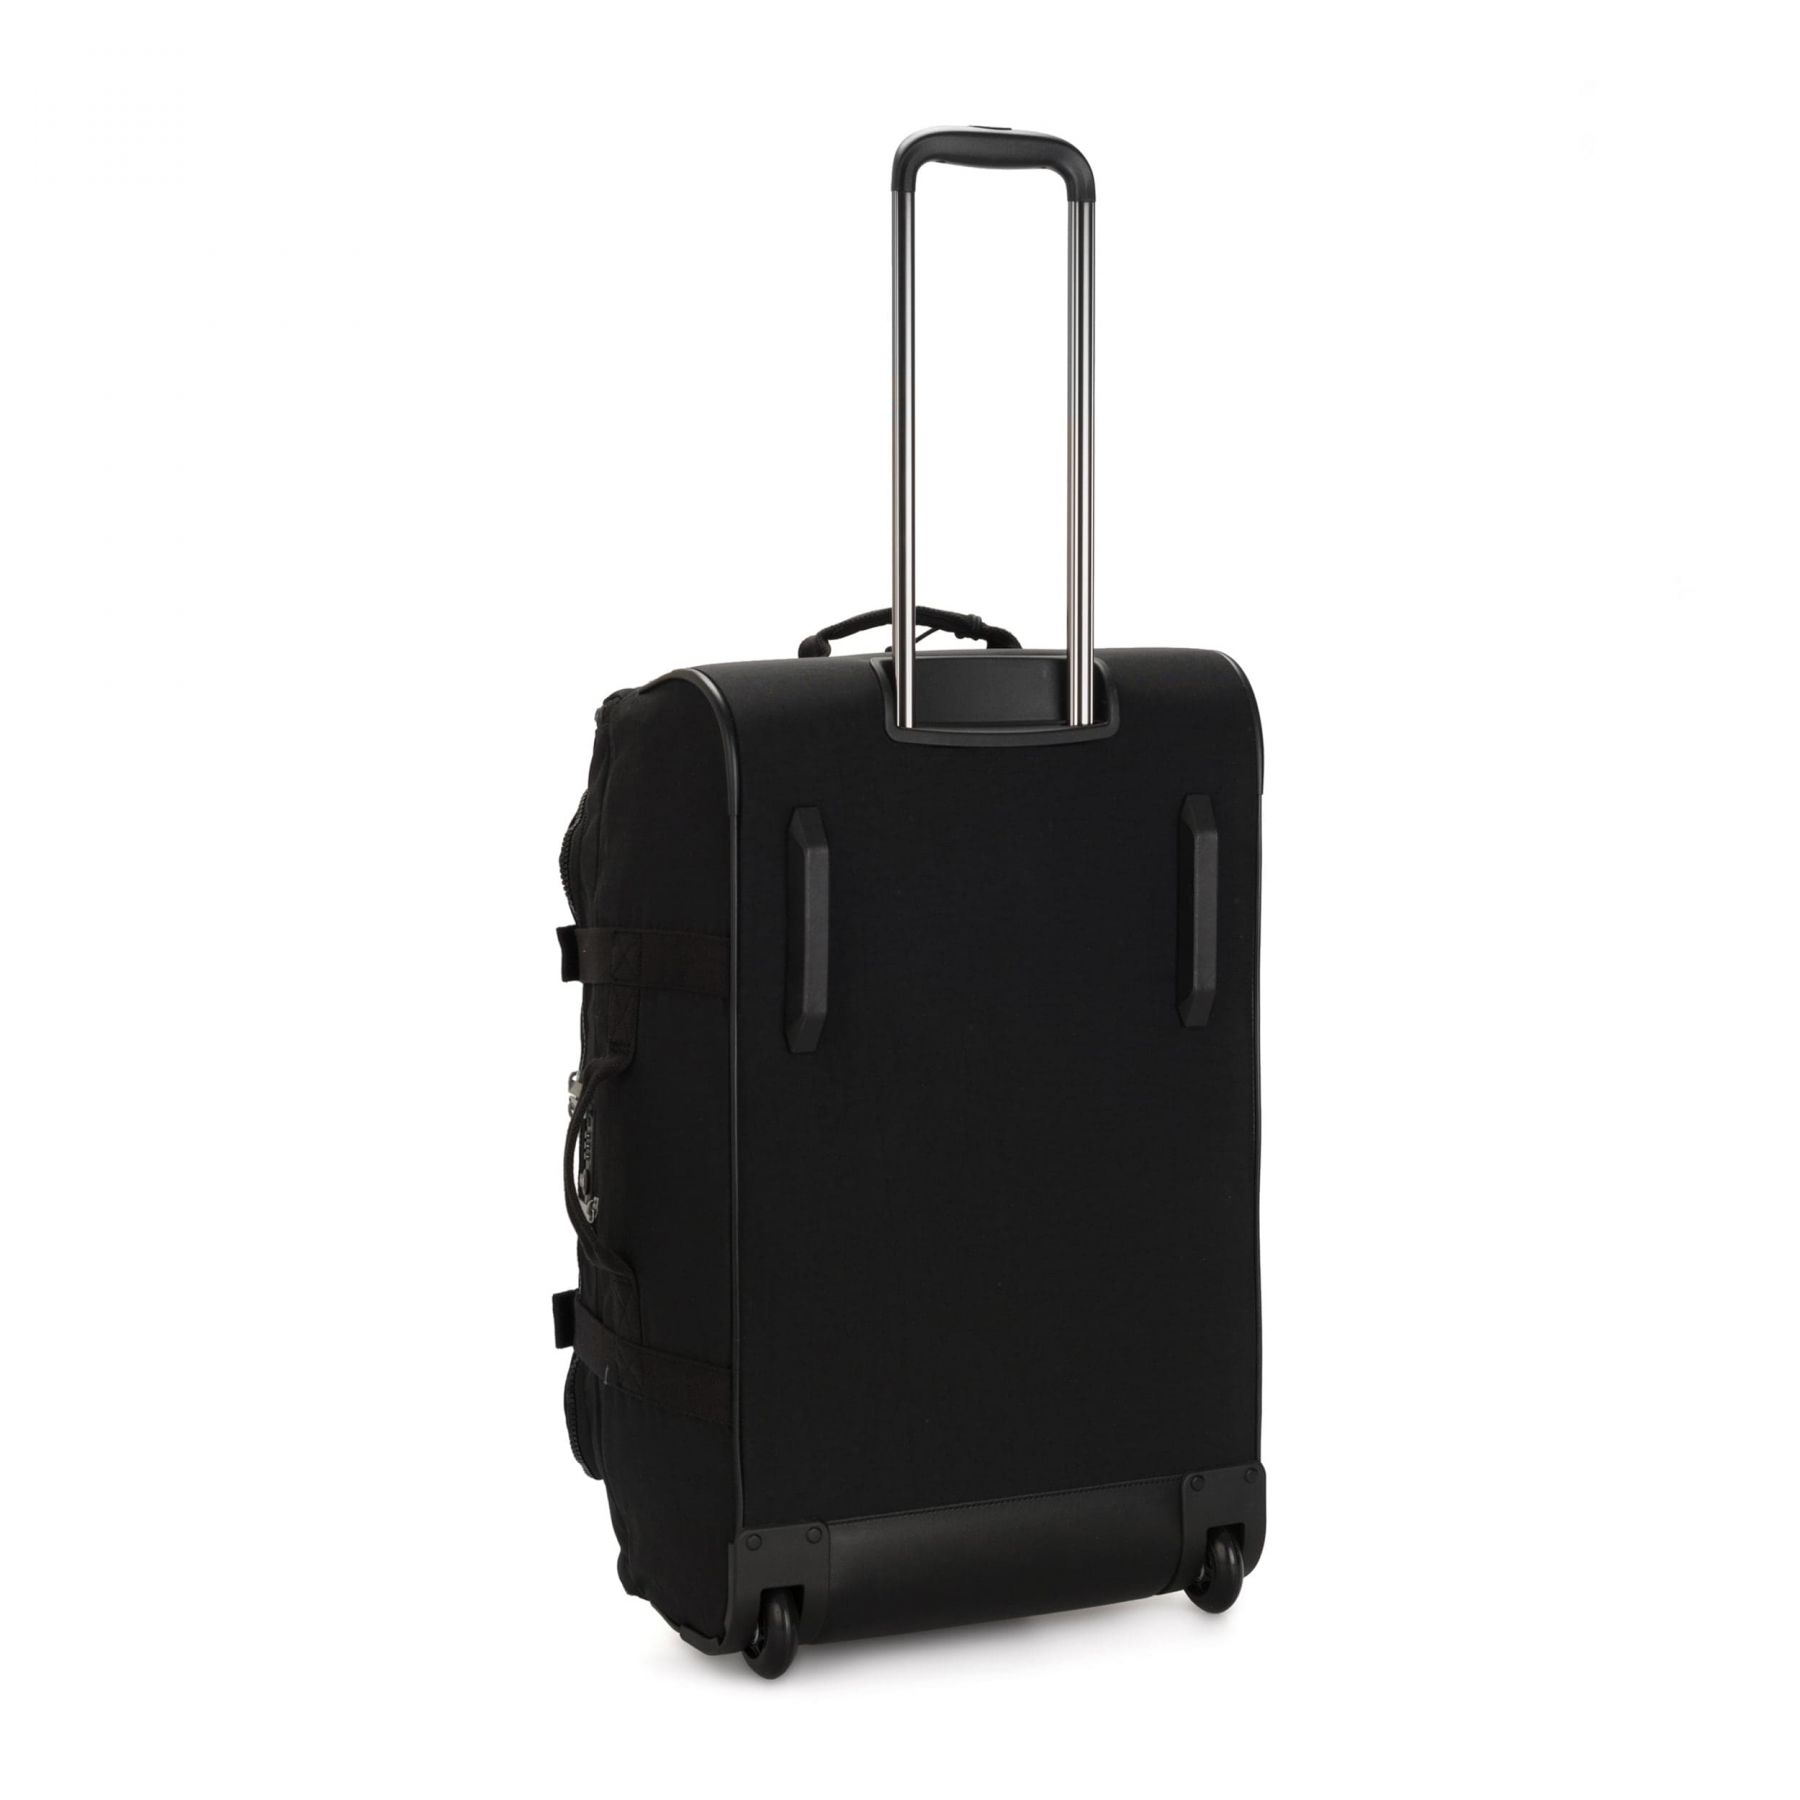 DISTANCE M Latest Luggage by Kipling - Back view